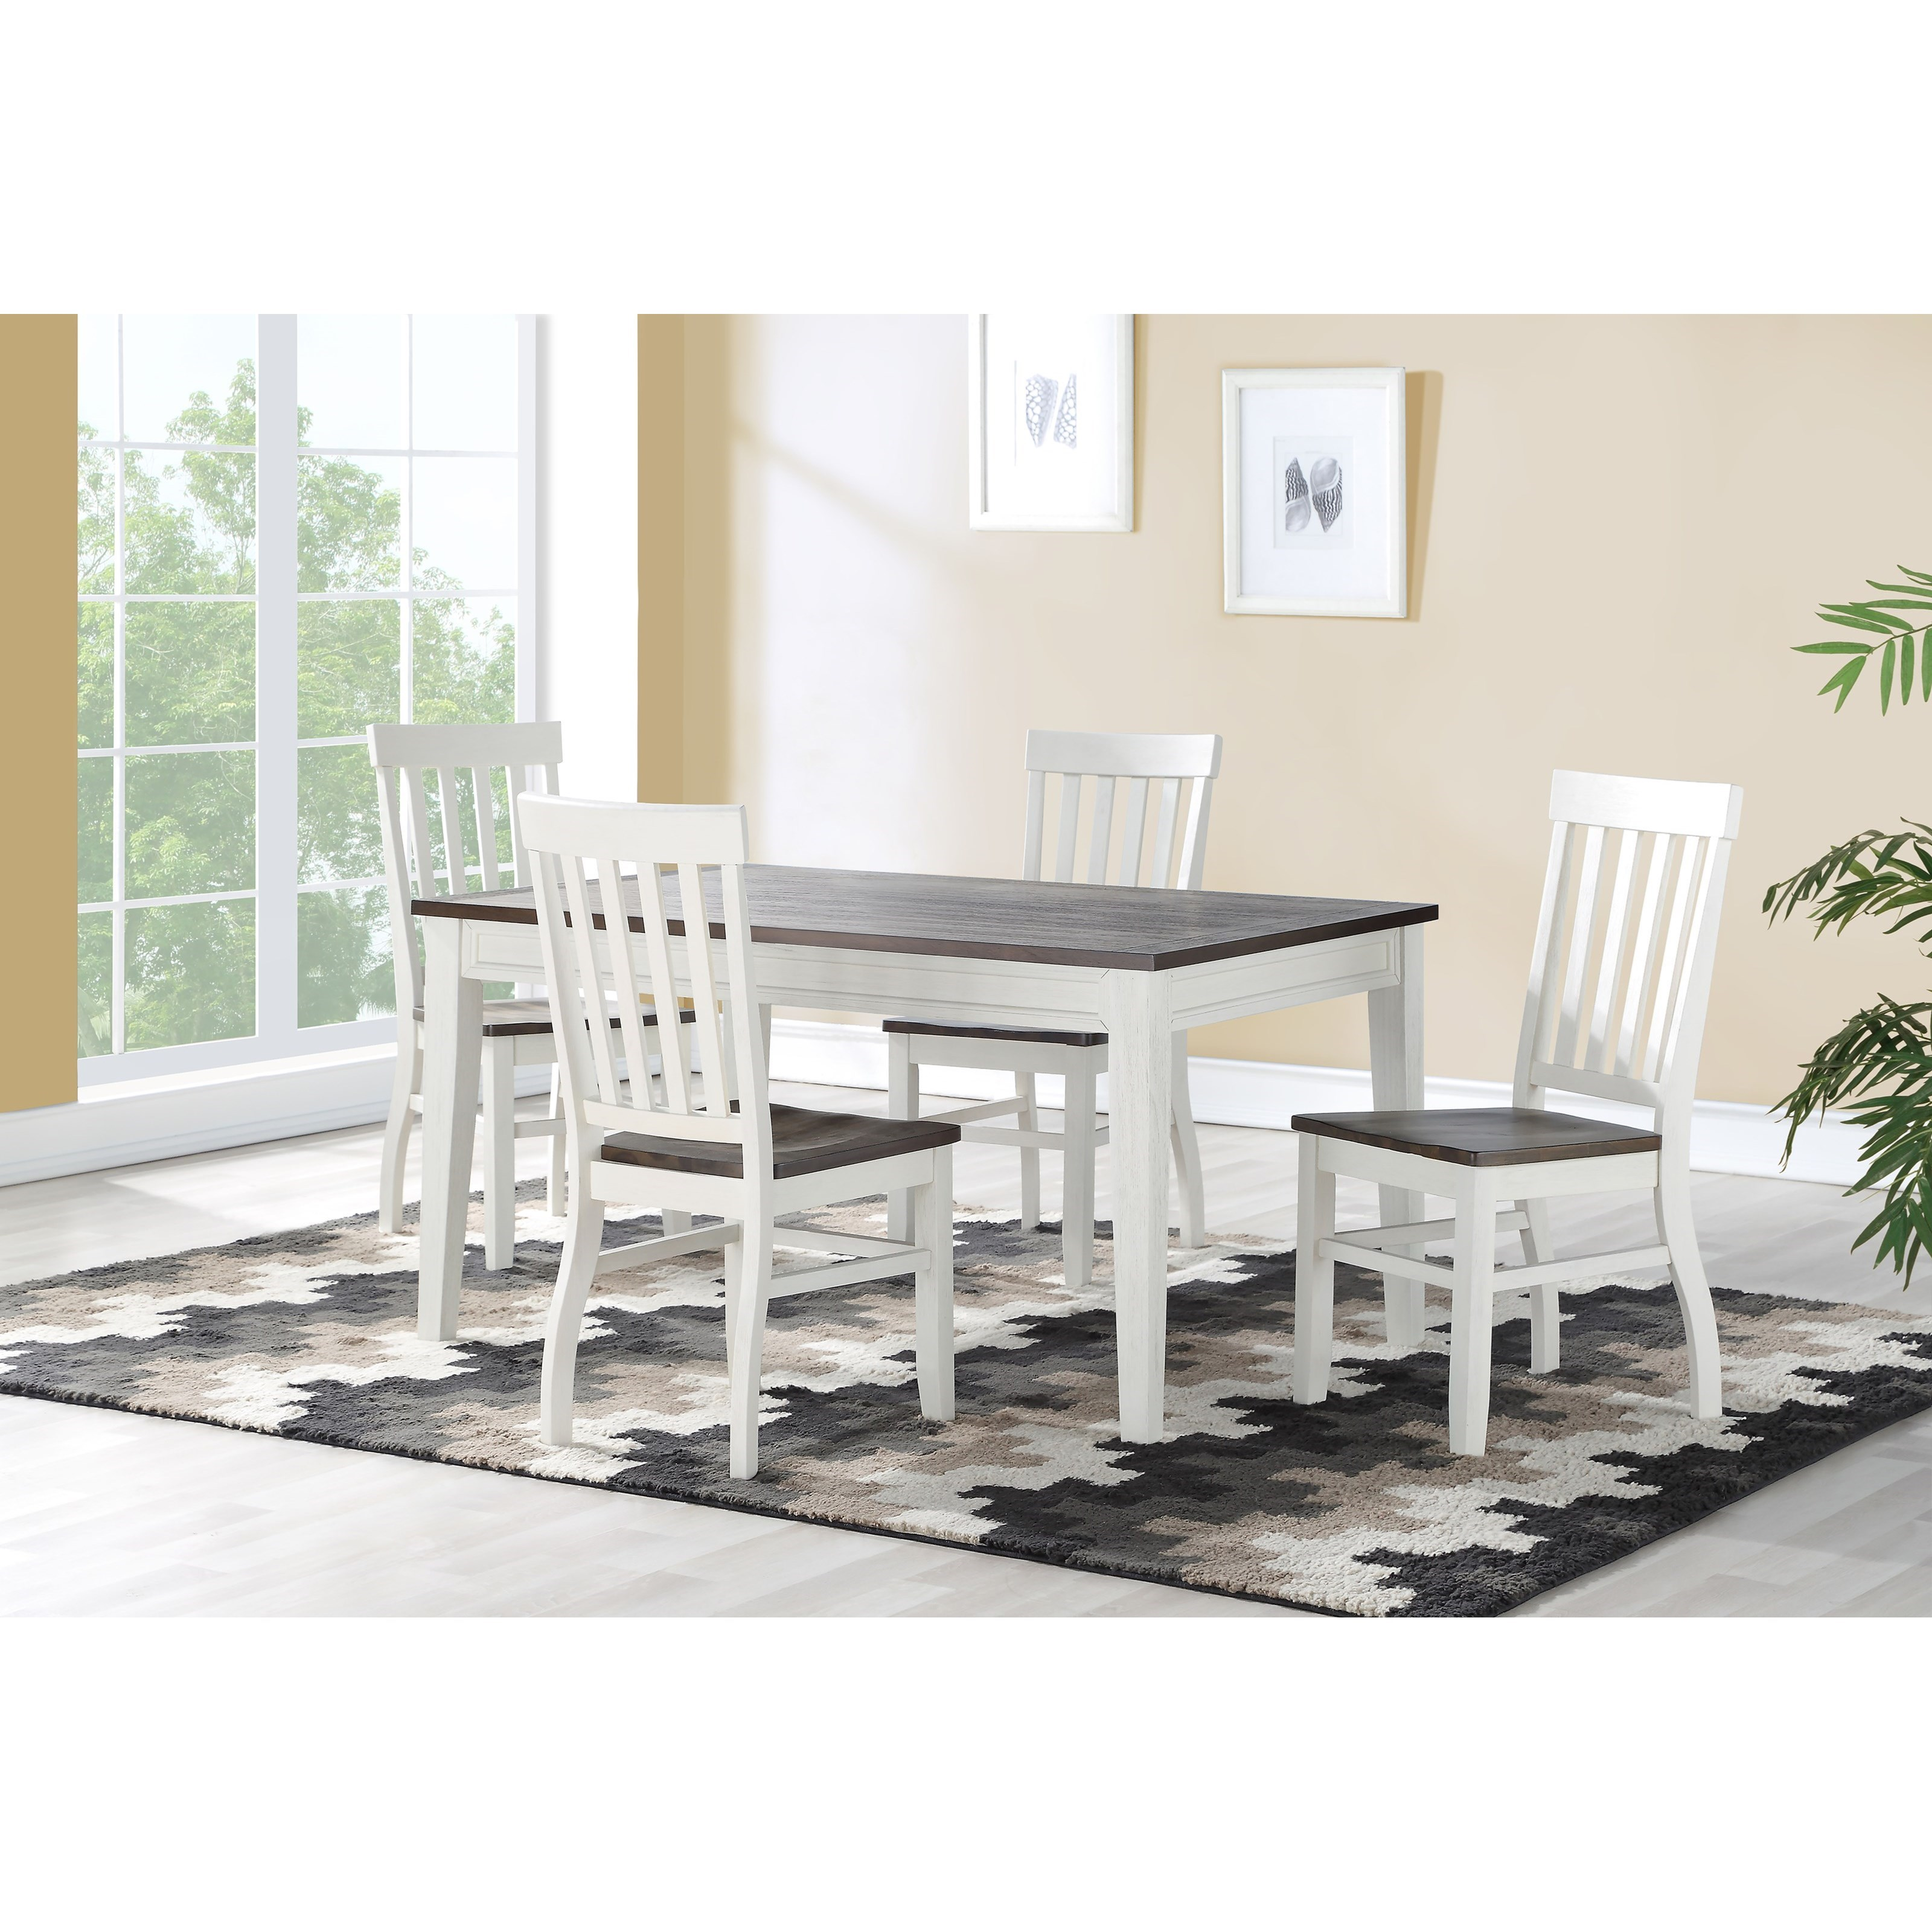 Caylie 5-Piece Dining Set by Steve Silver at Northeast Factory Direct